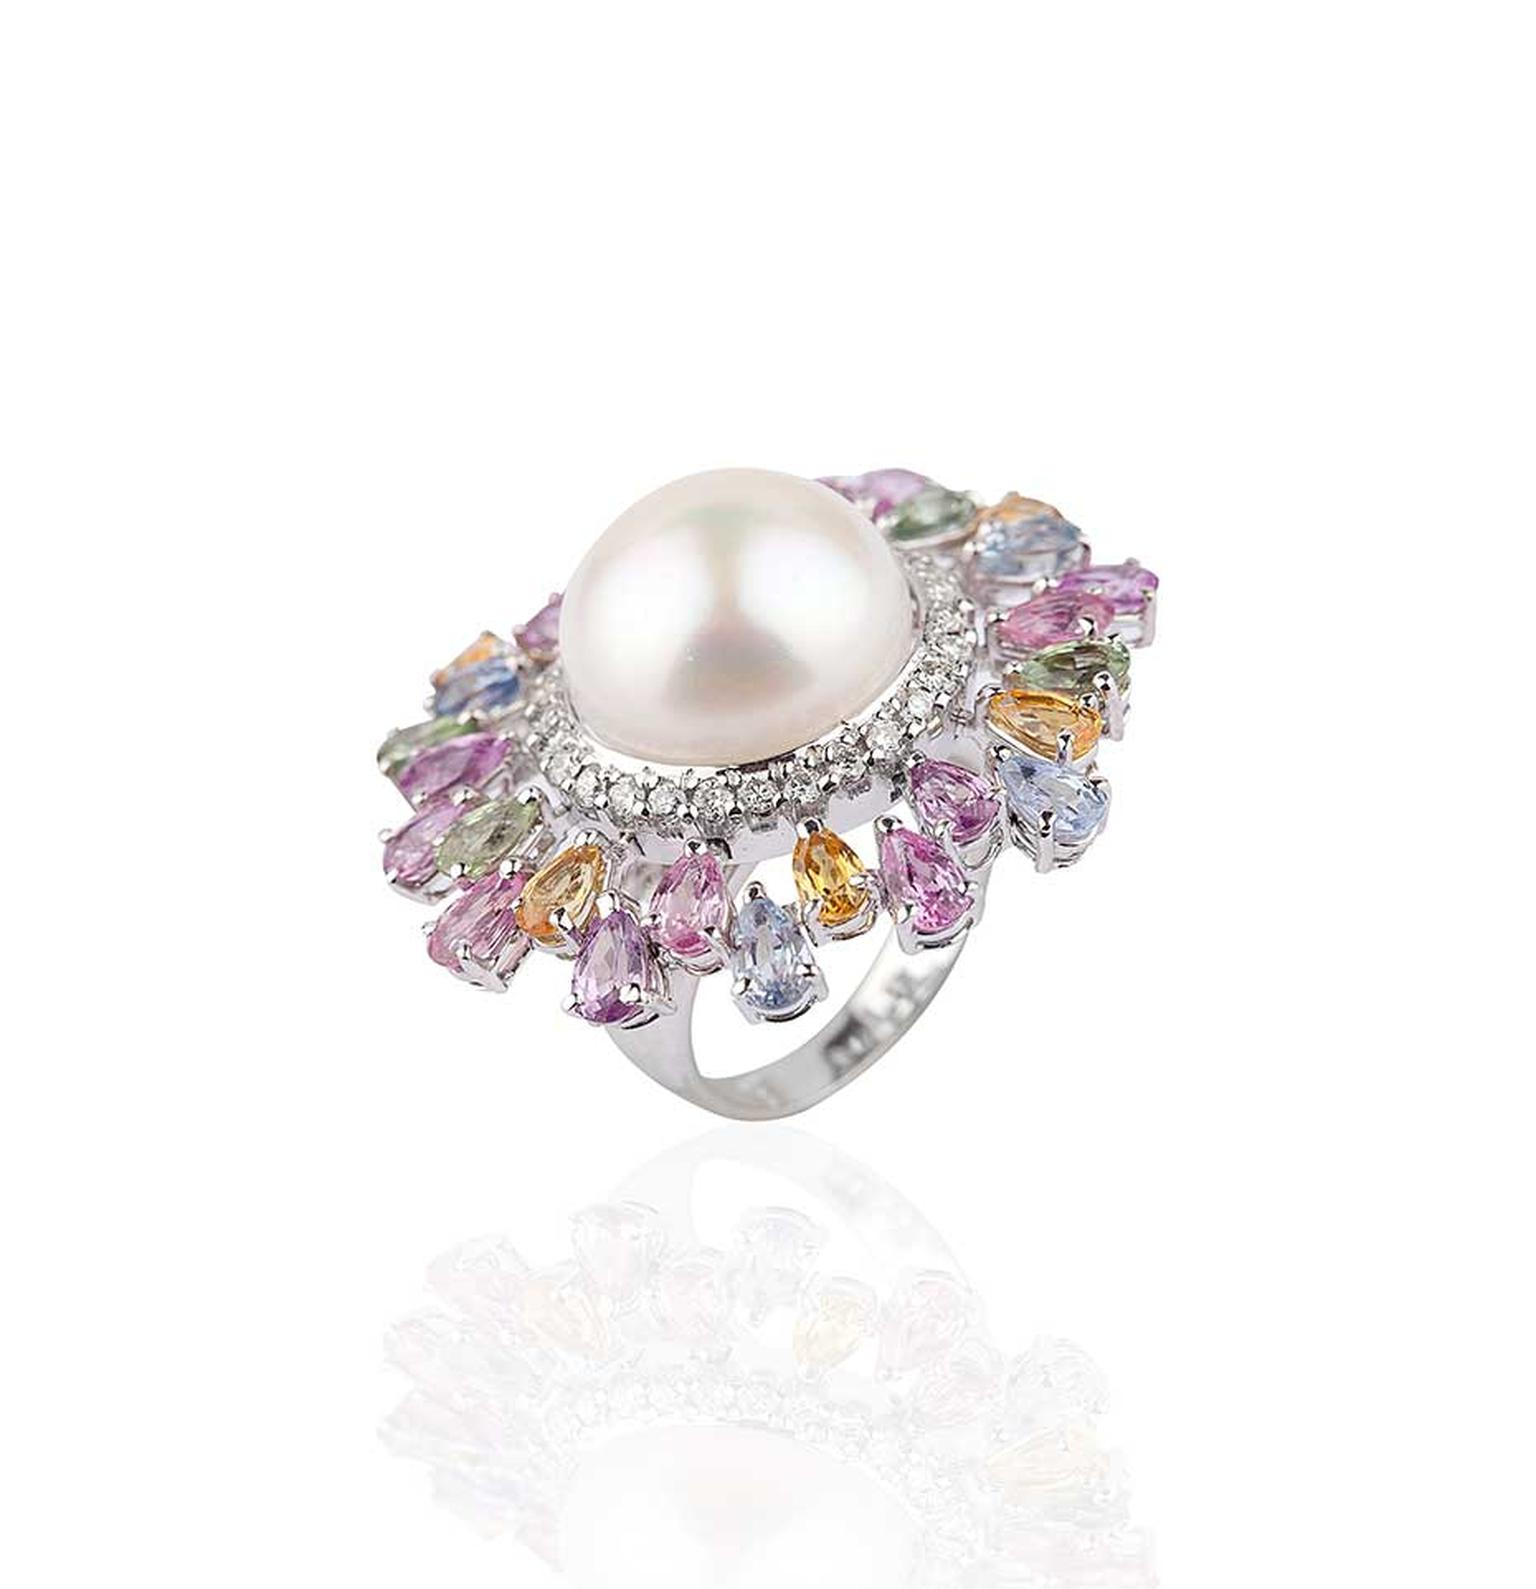 Mirari white gold ring with multi-coloured sapphires and white diamonds surrounding a freshwater pearl